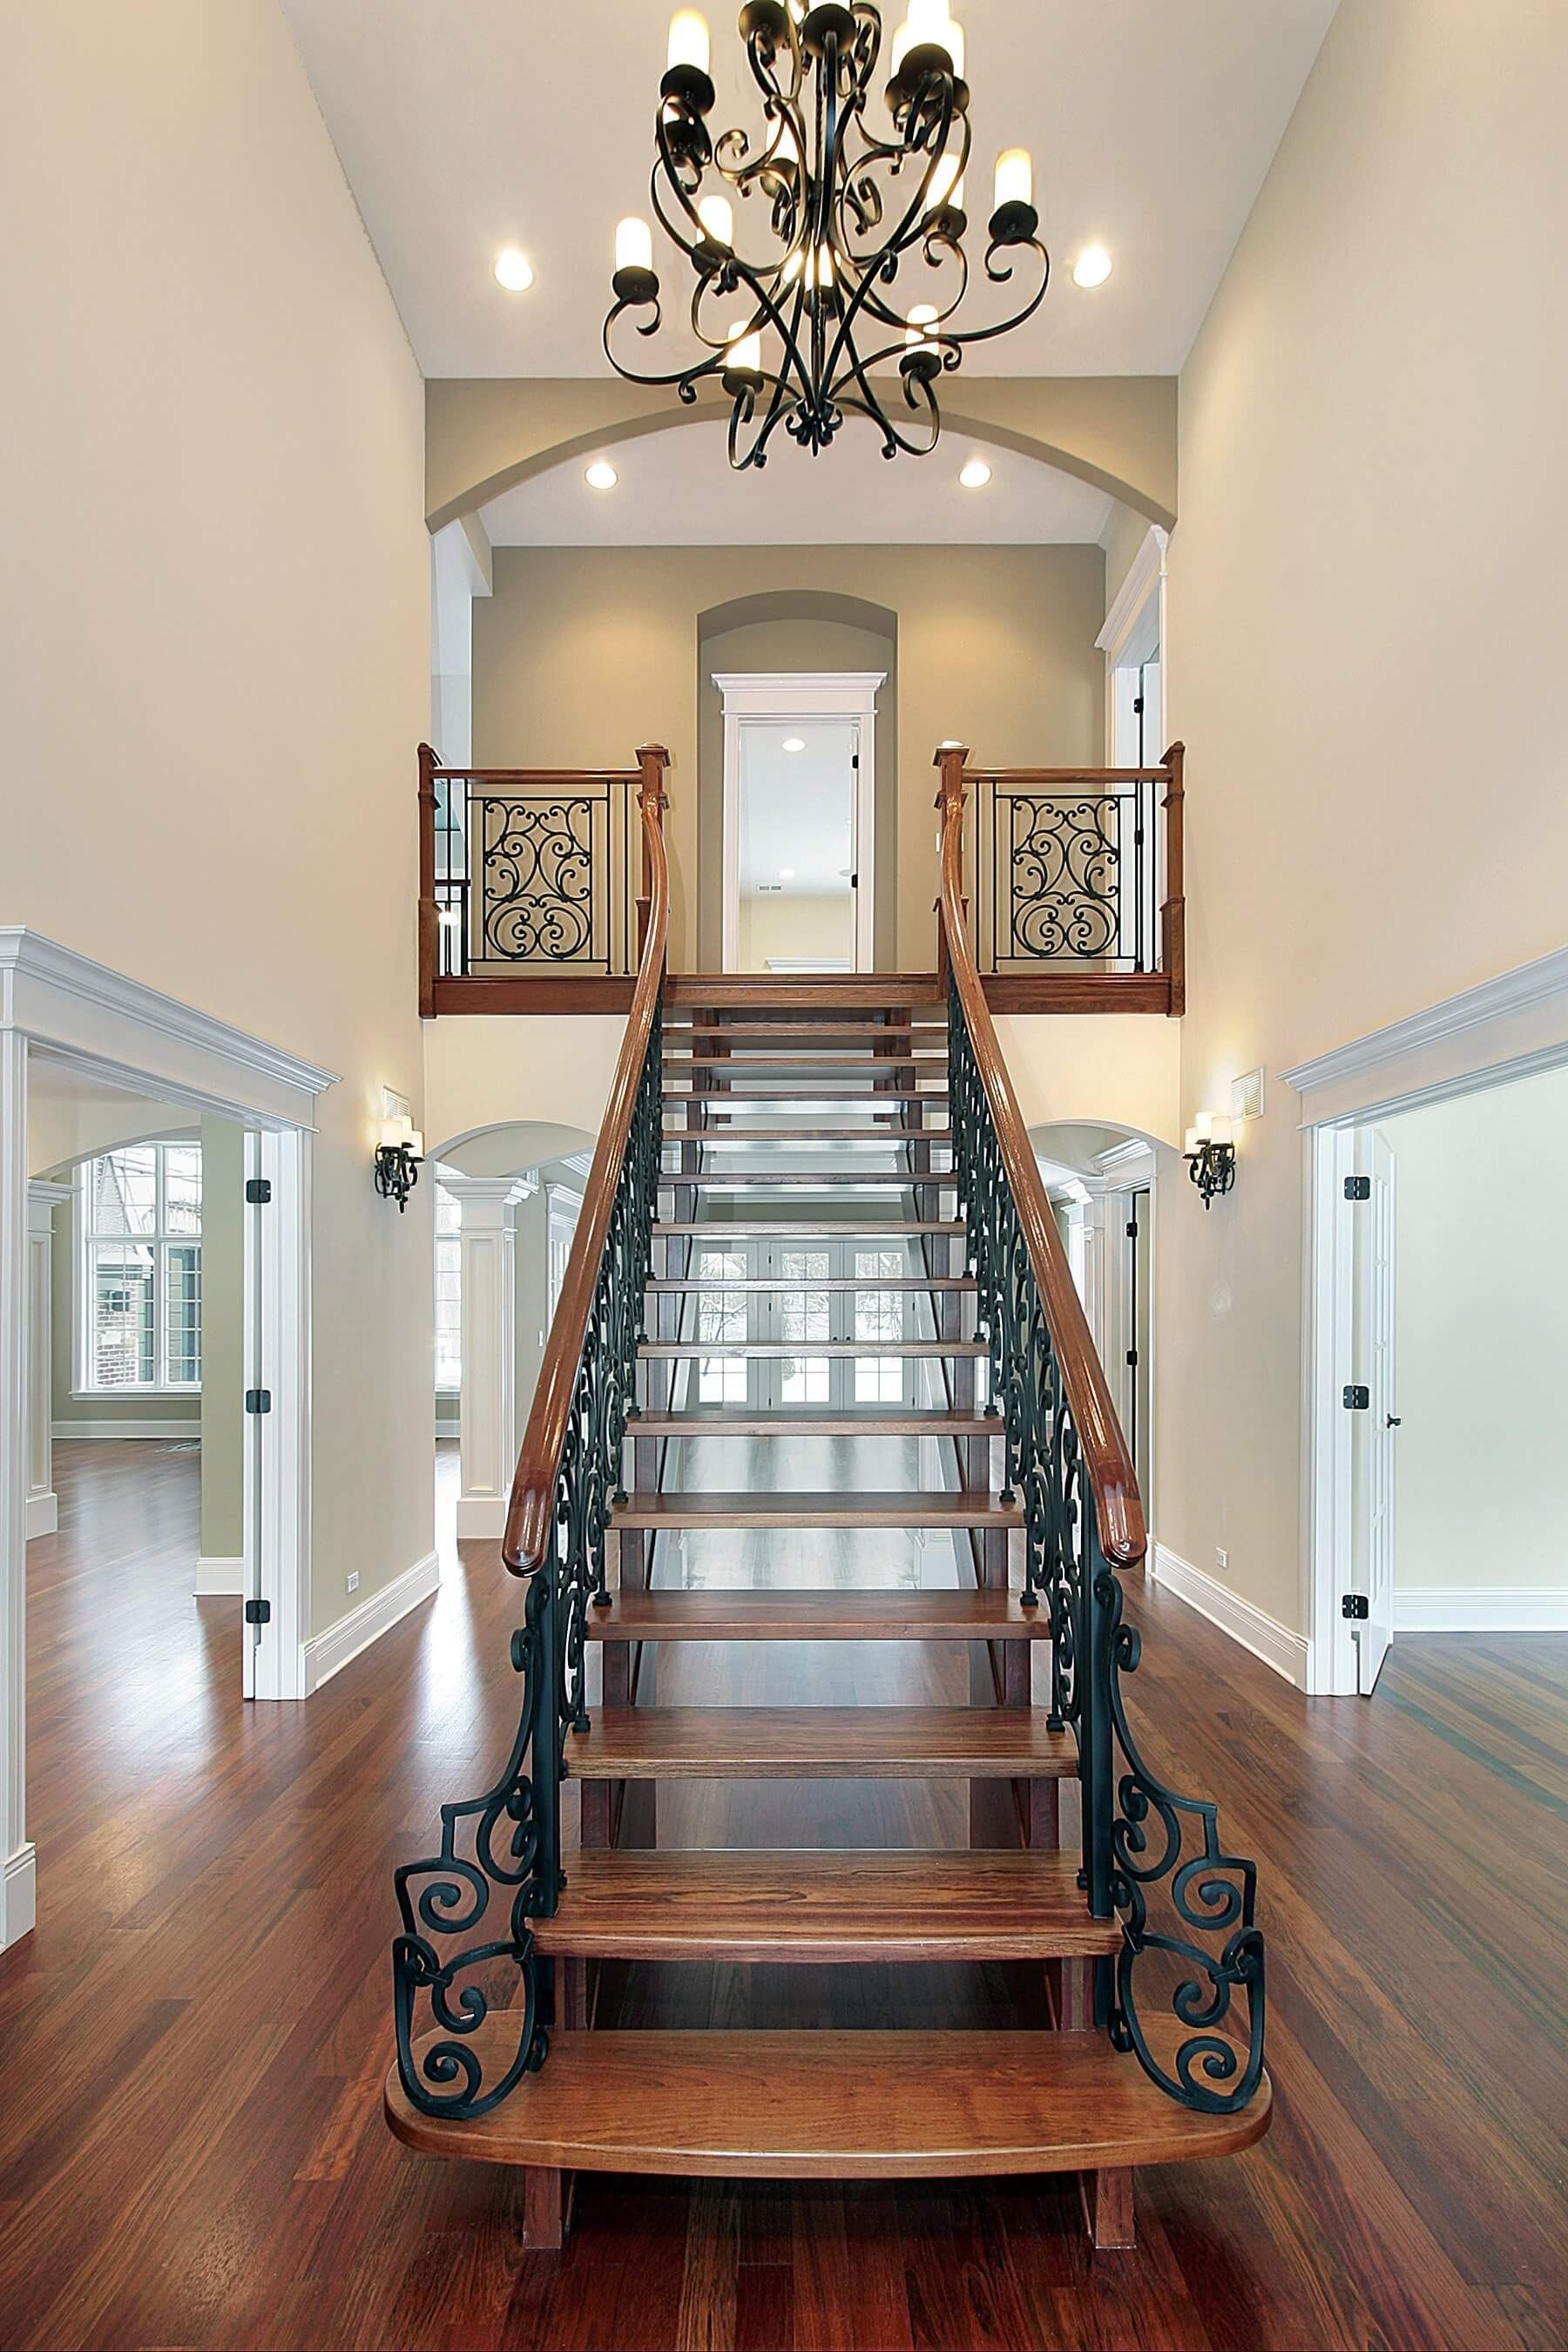 Foyer Layout View : The split staircase allows a view of dining area